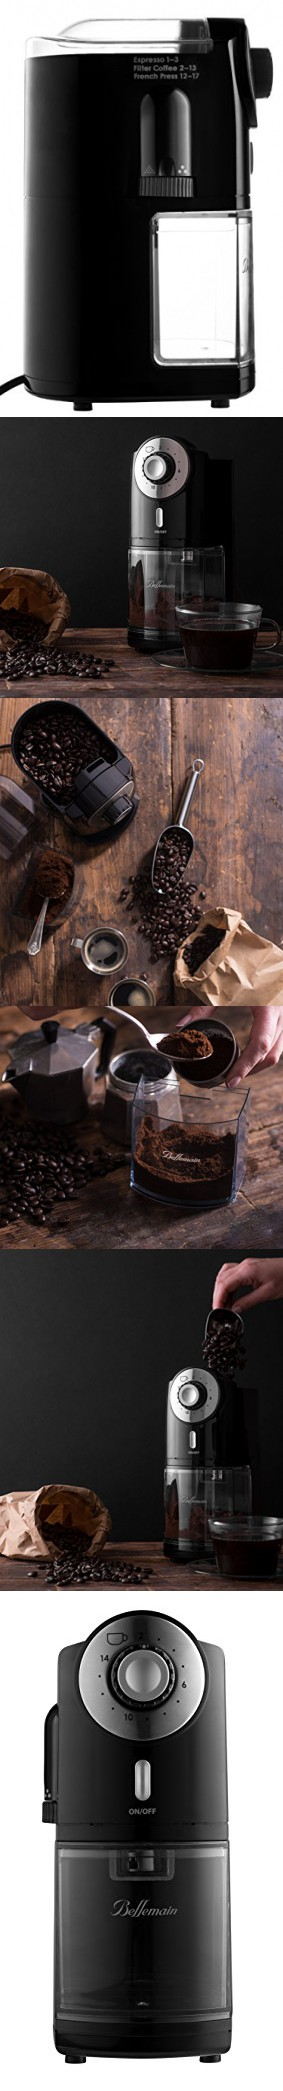 Top Rated Bellemain Burr Coffee Grinder with 17 Settings